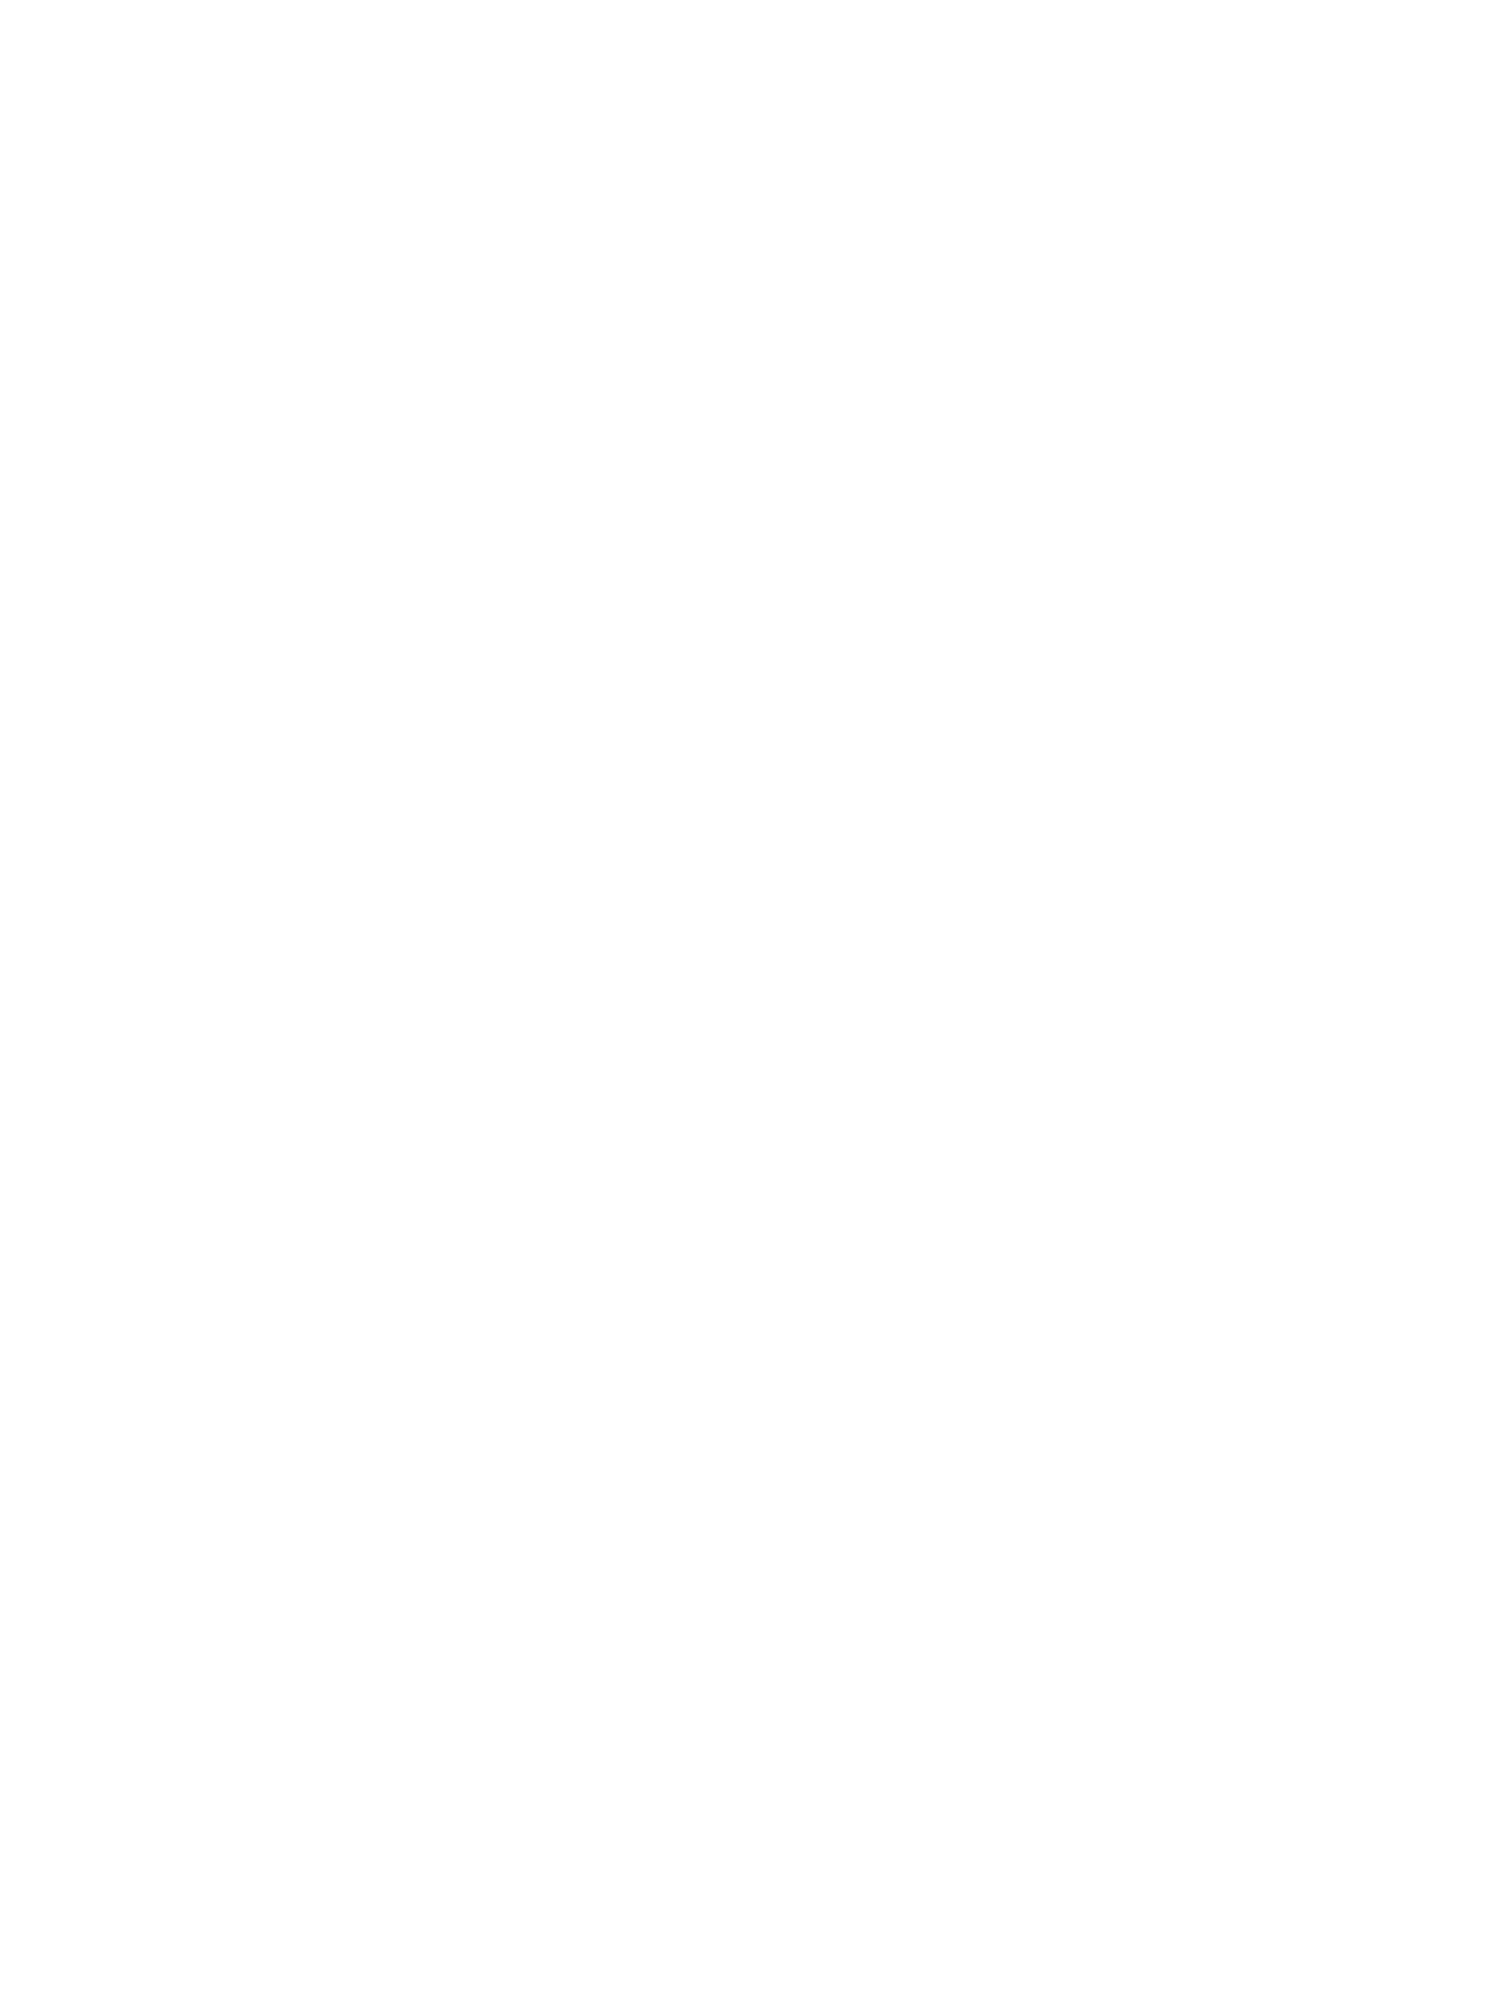 Sylvester Manor Educational Farm